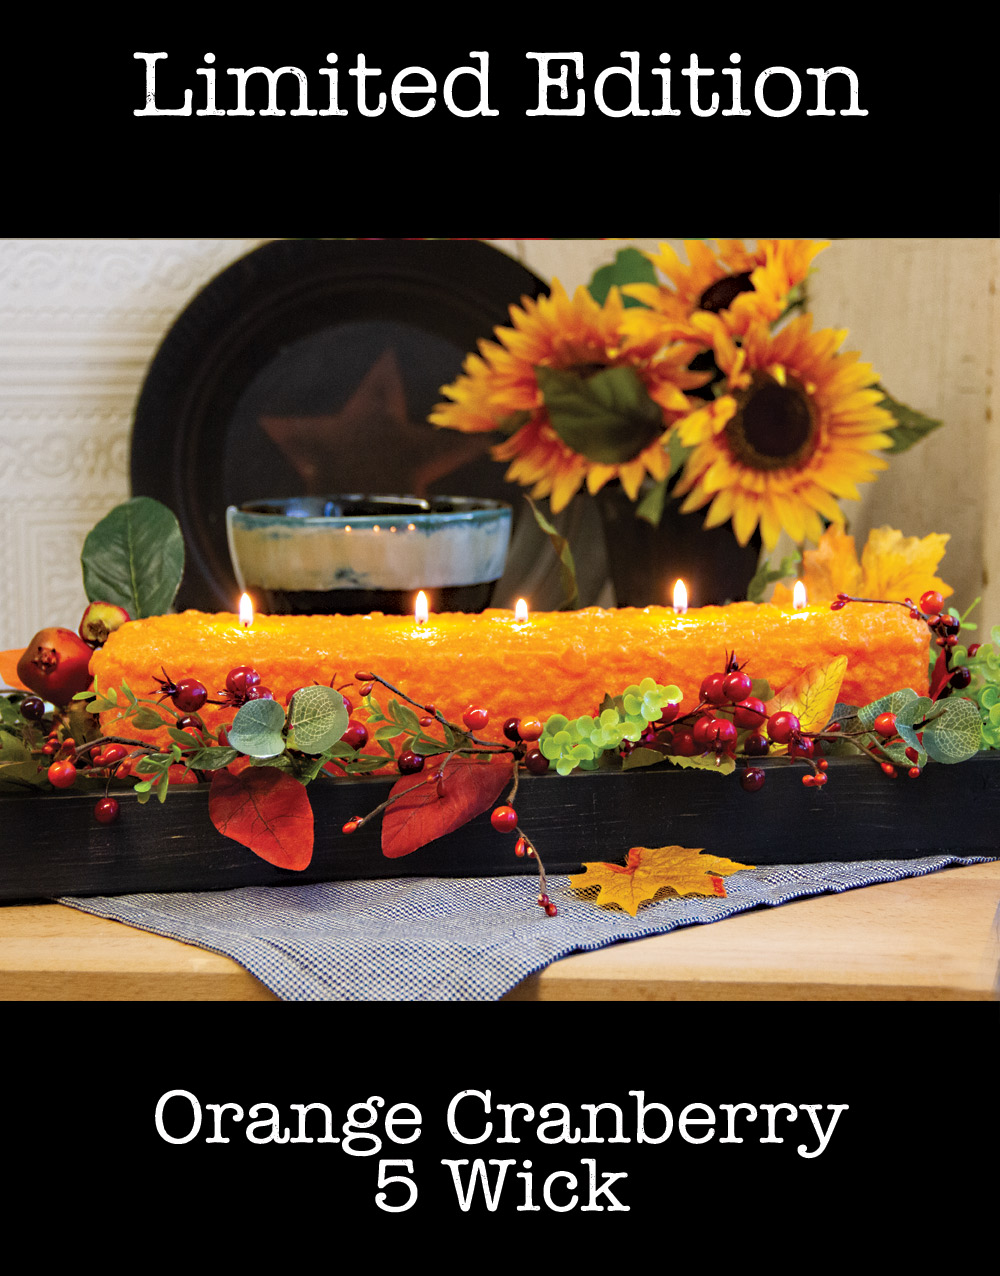 Holiday Edition 5 Wick Loaf Candle – Orange Cranberry